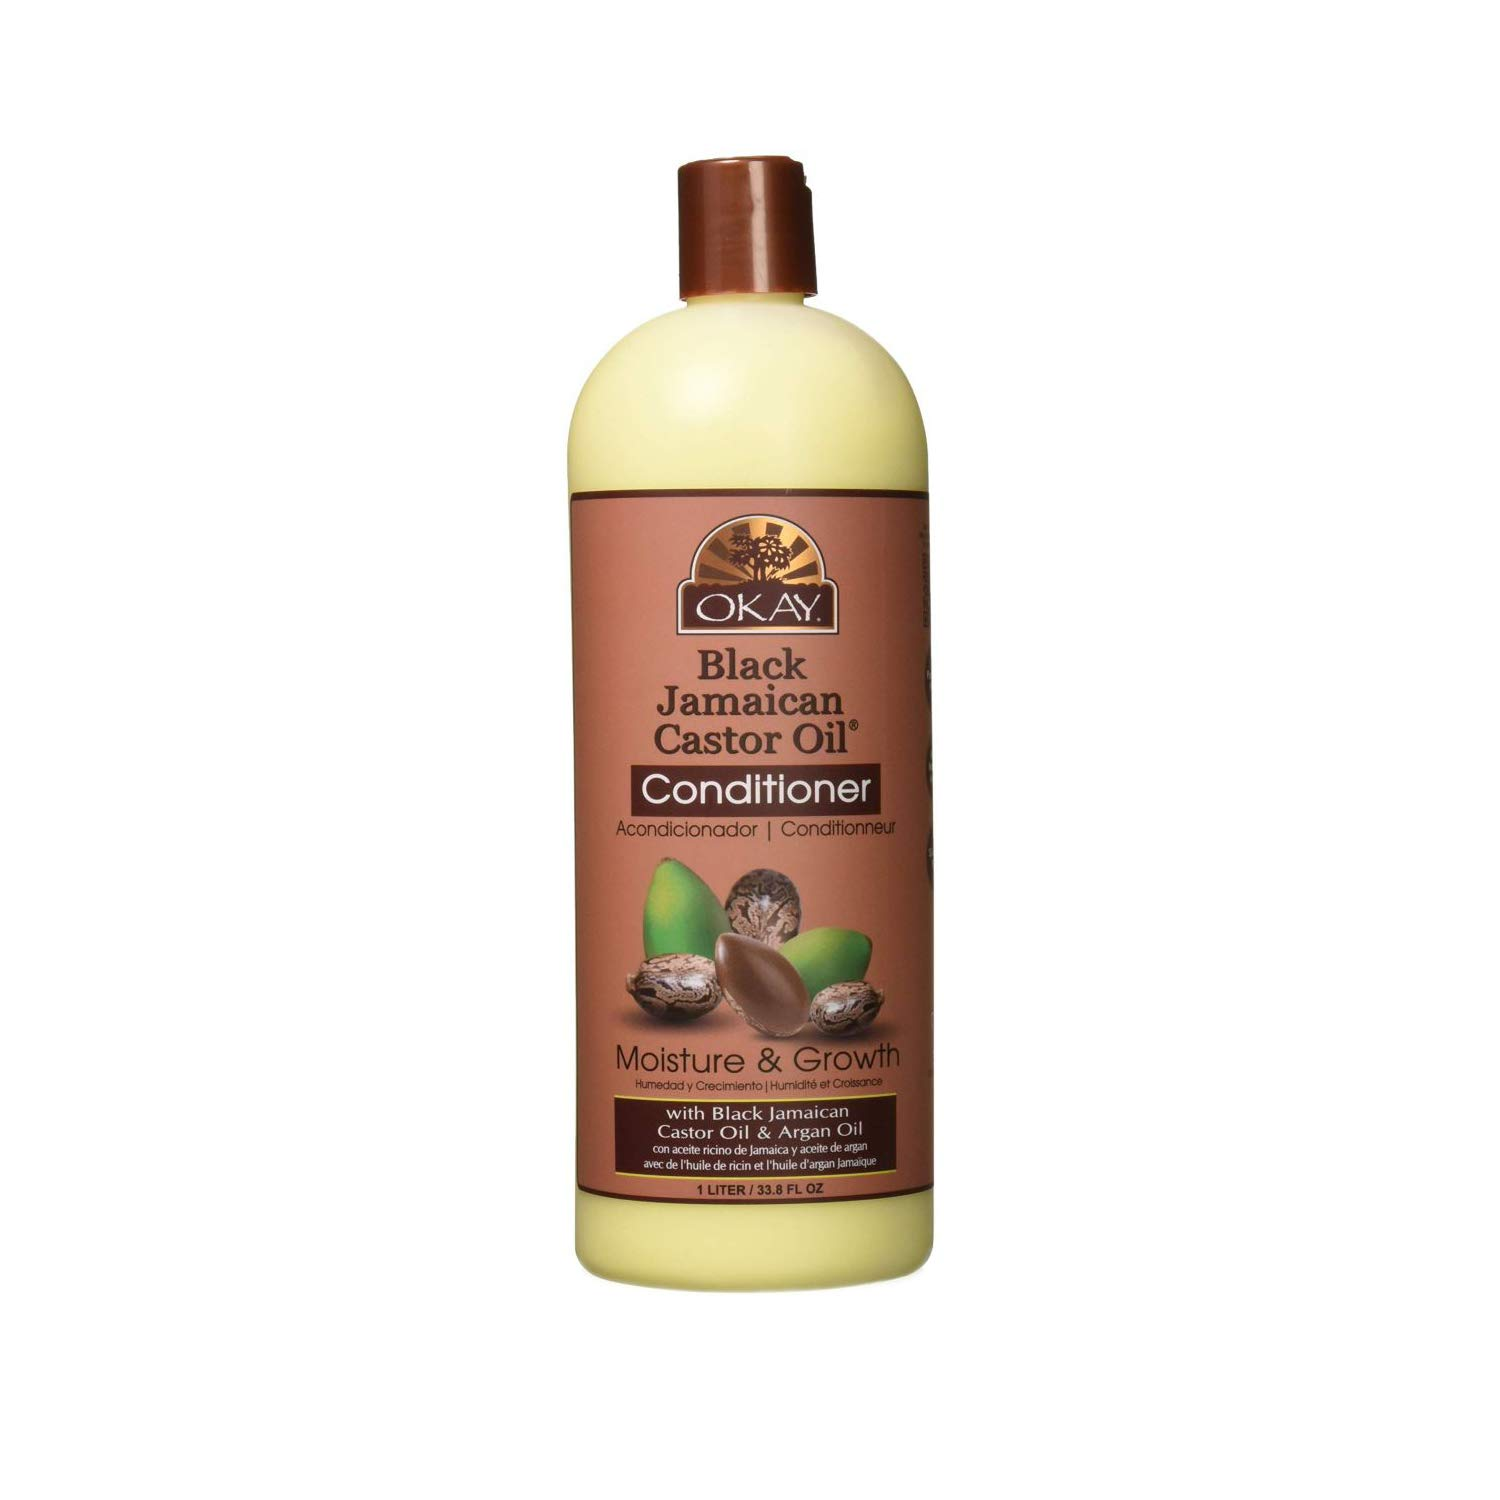 Amazon.com : OKAY | Black Jamaican Castor Oil Conditioner ...